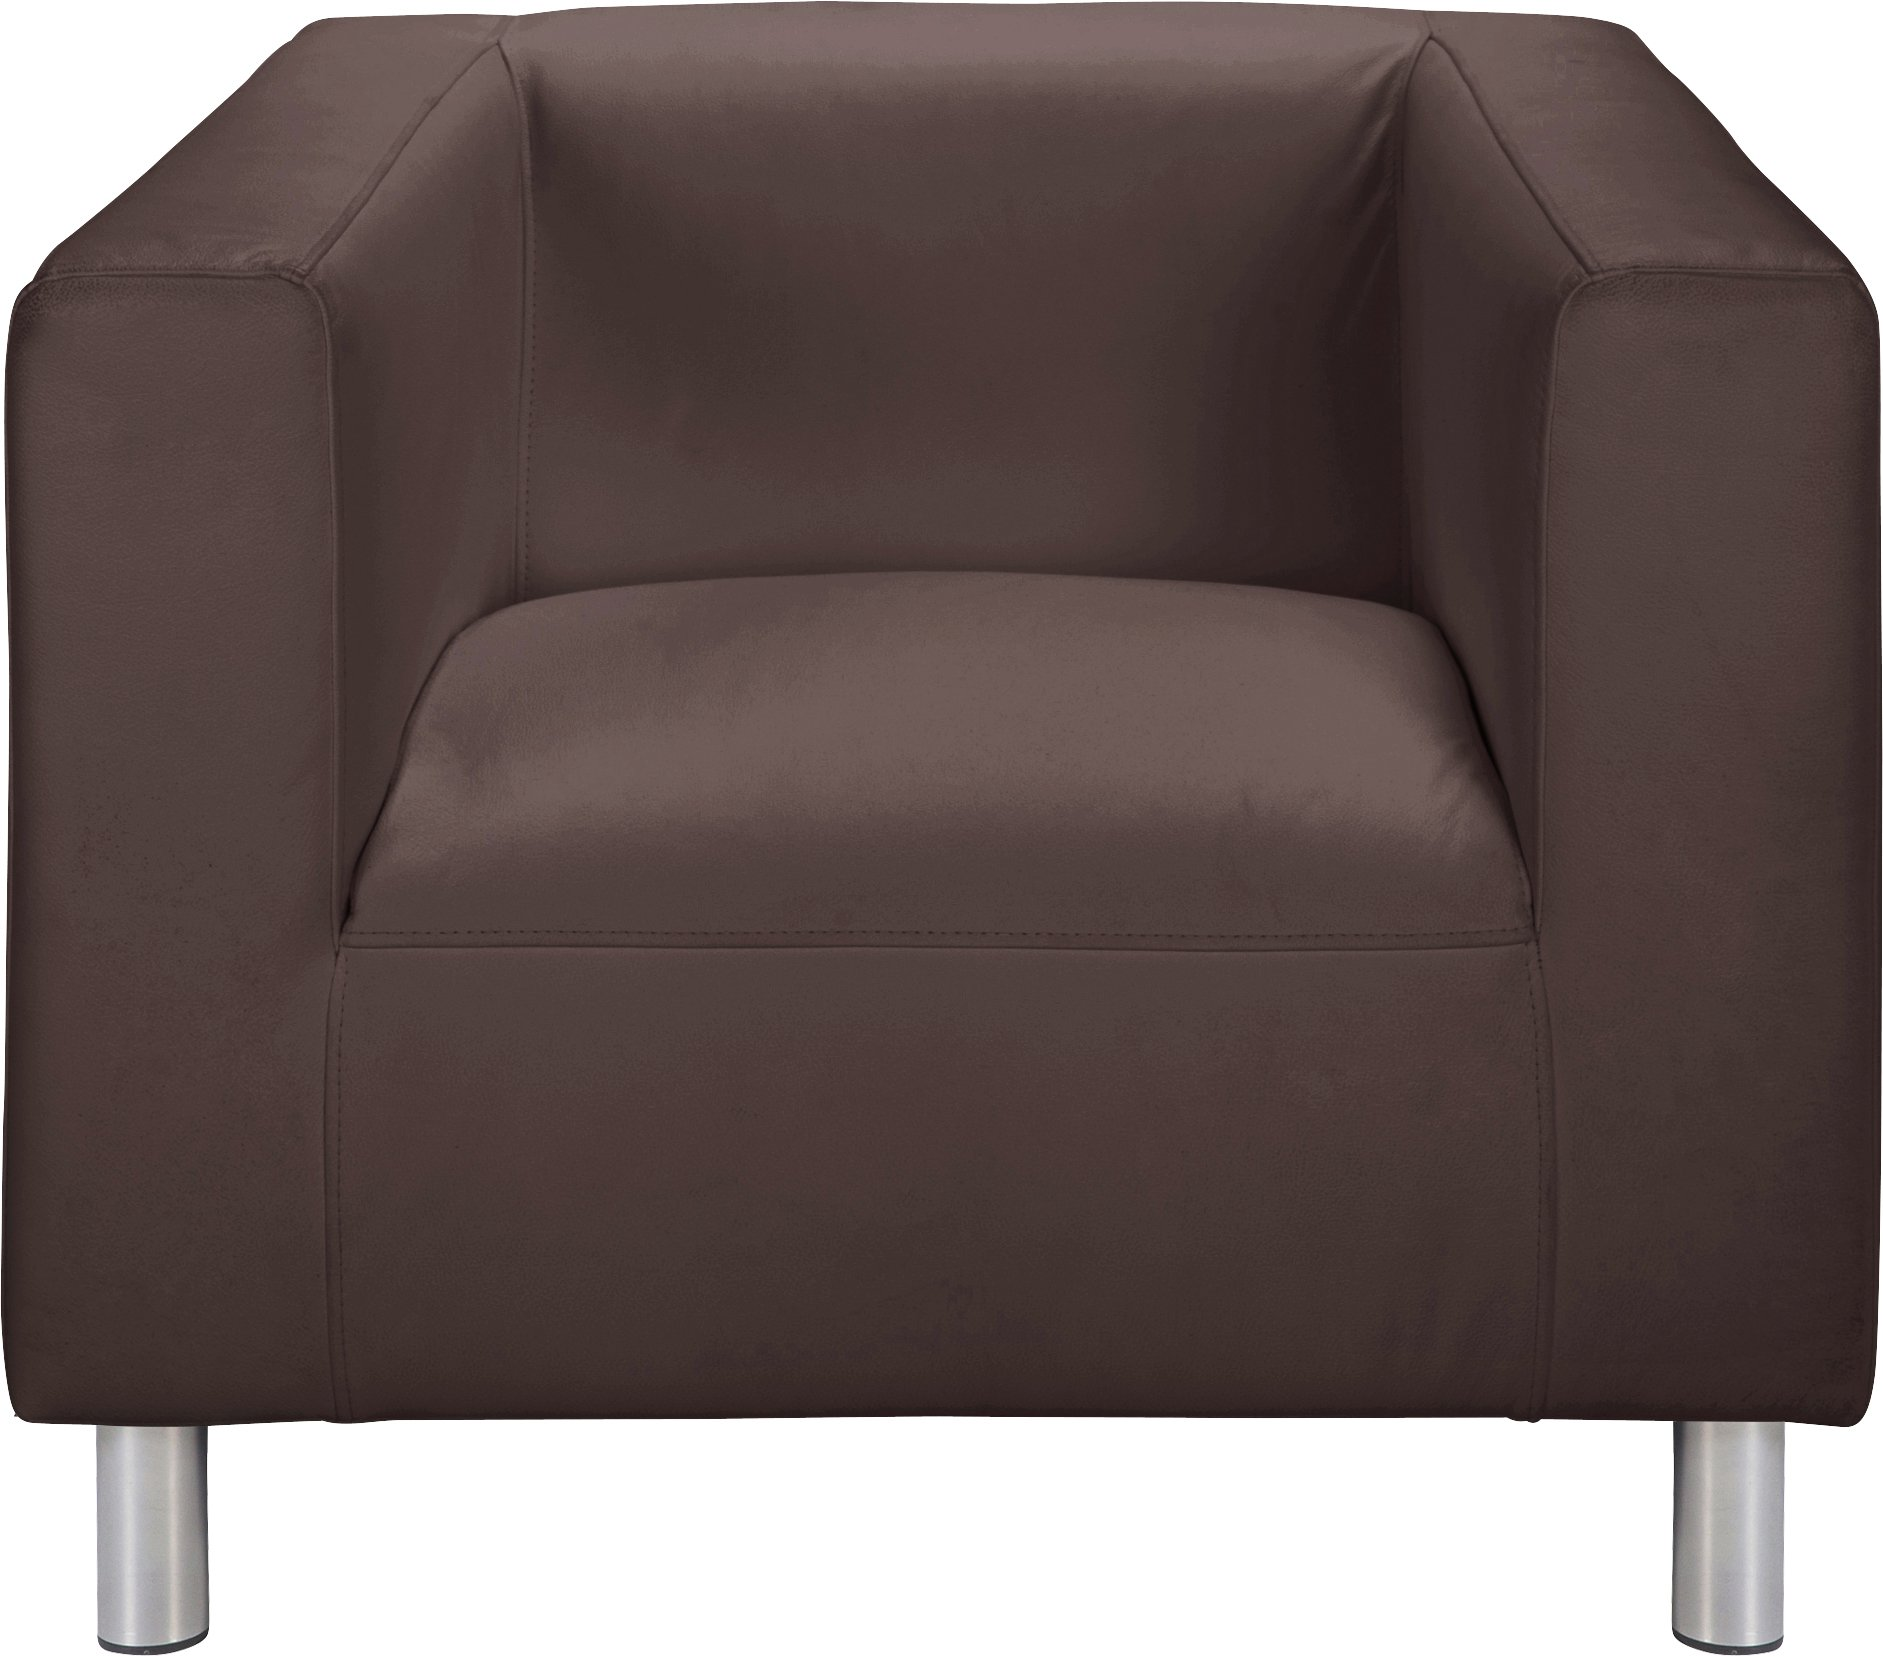 Argos Home Moda Faux Leather Armchair - Brown